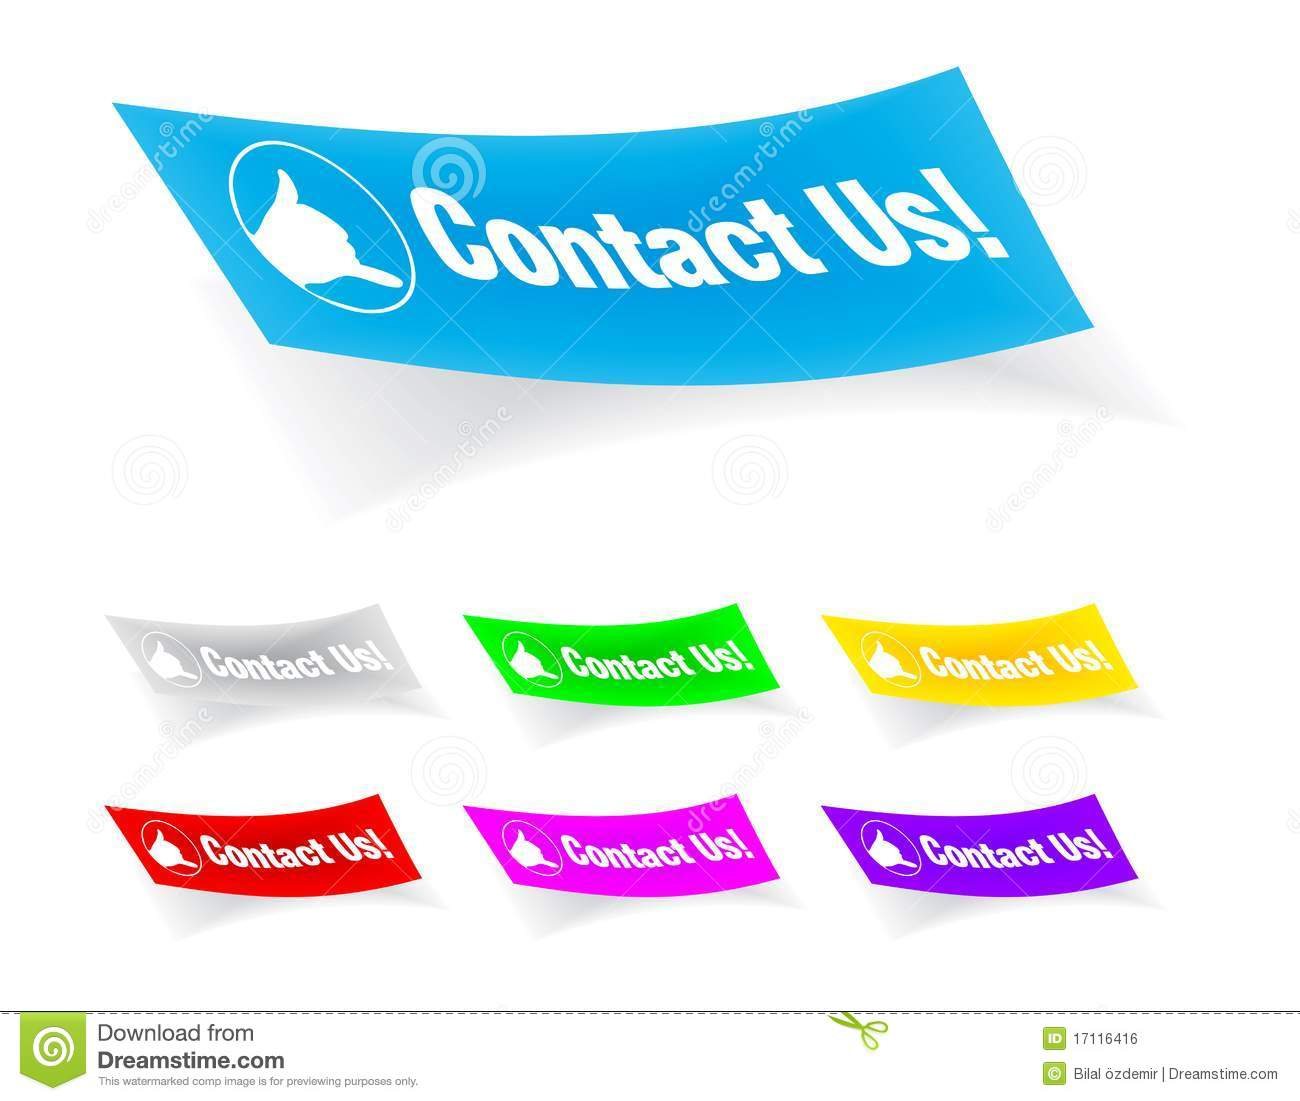 Contact us icon on the sticker easy editable